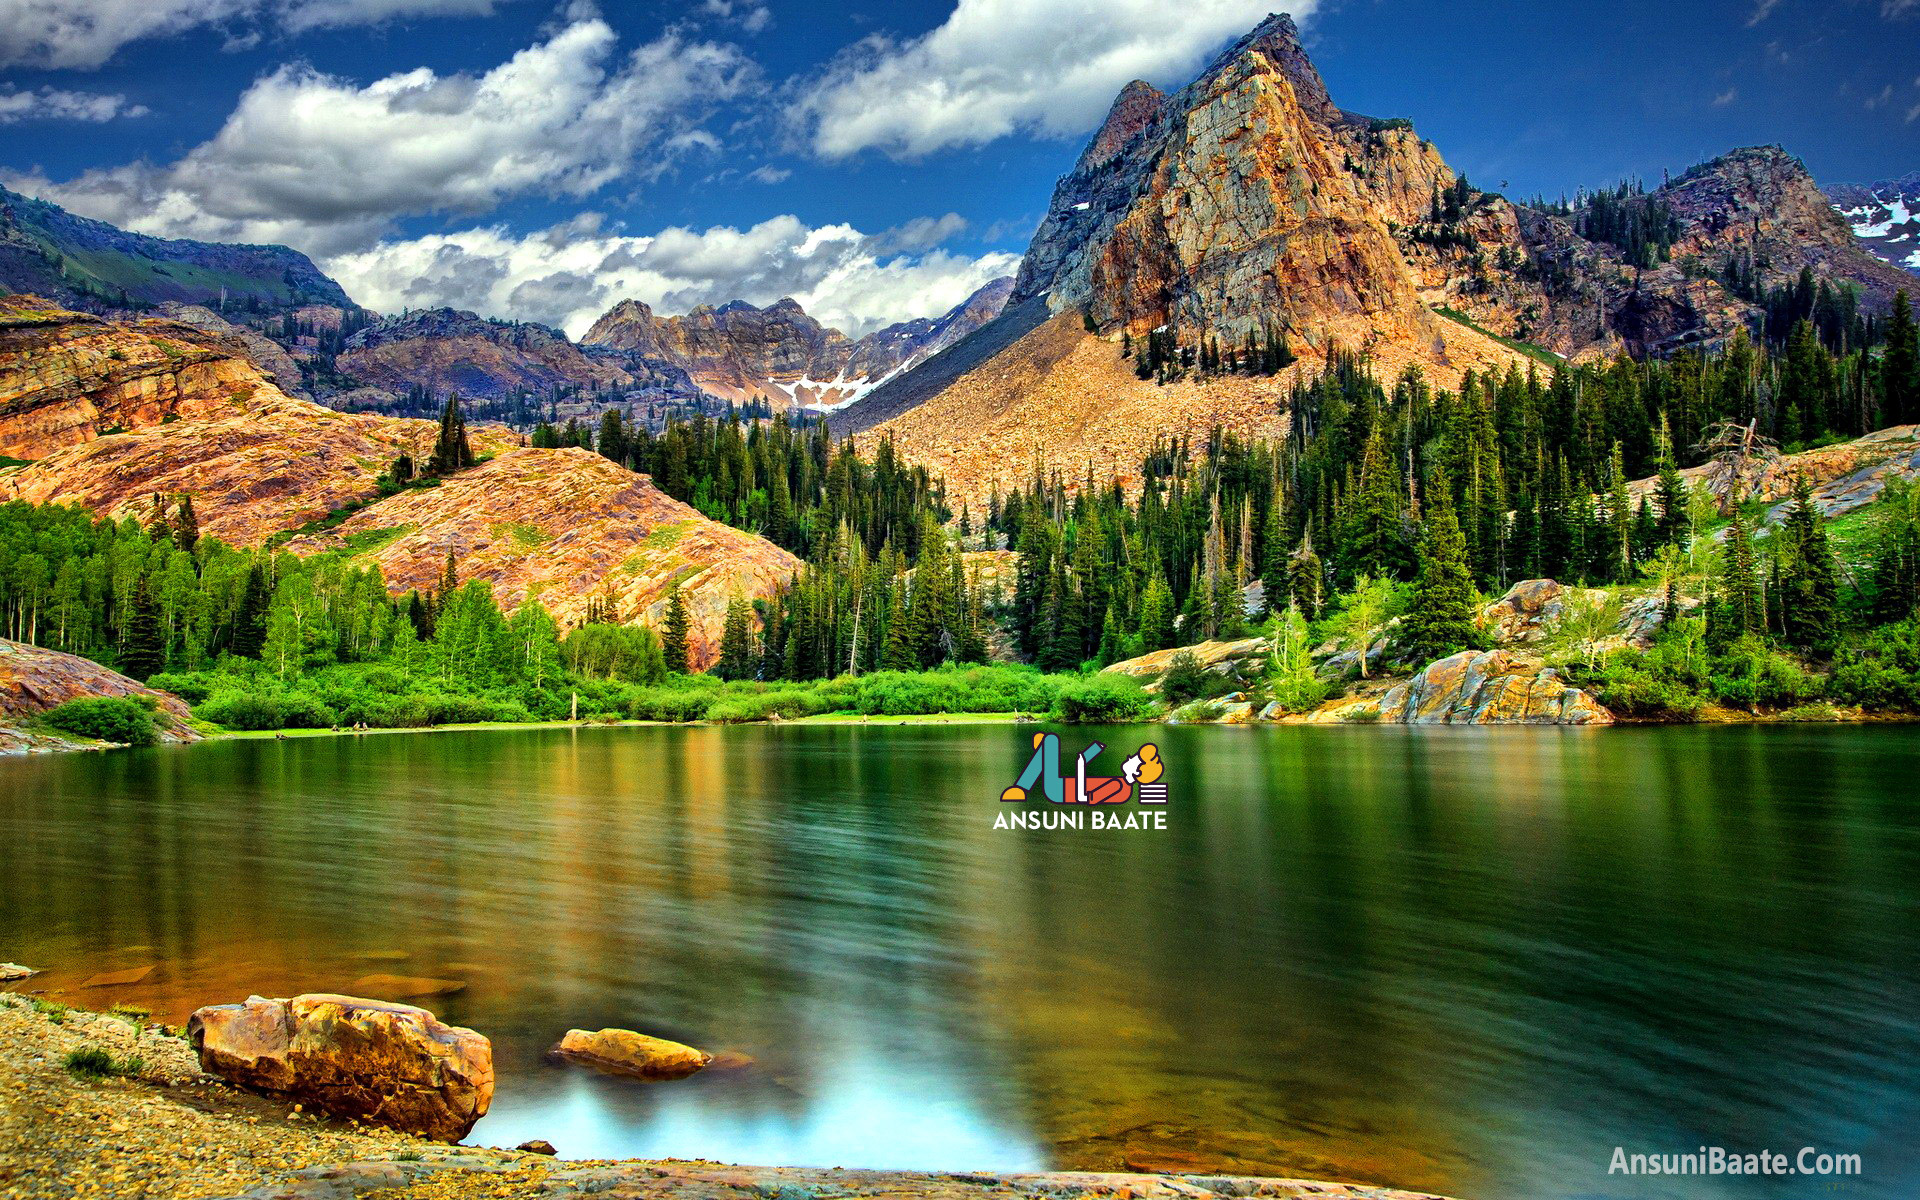 A collection of landscape photos from different national parks. Nature Wallpaper Full HD Gallery Images Photo Free ...